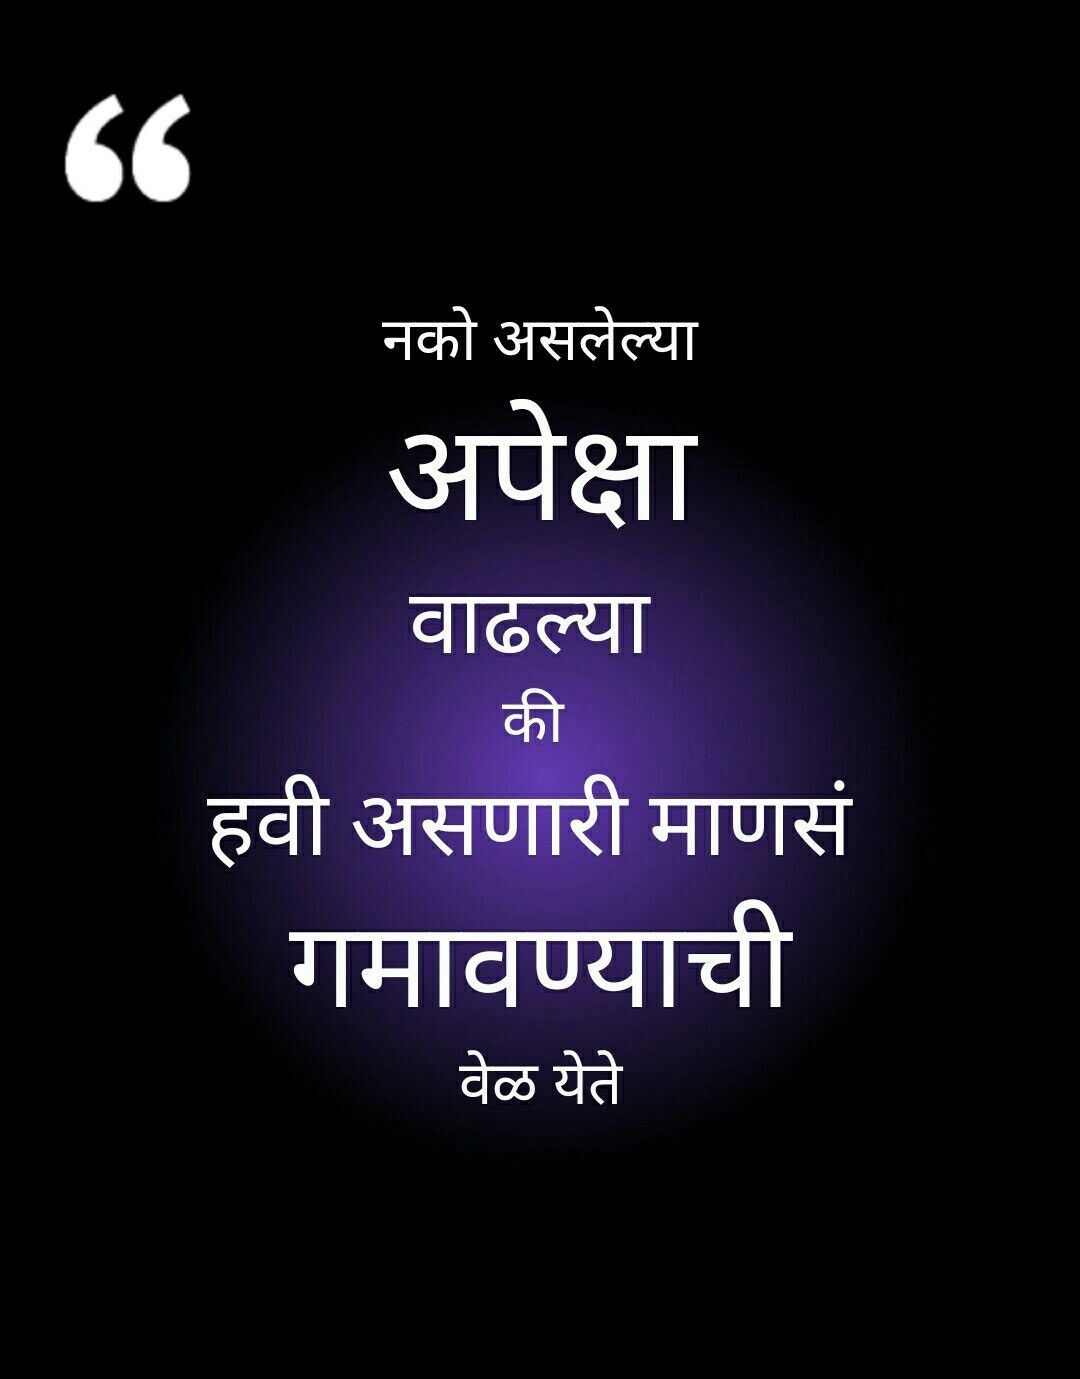 Pin By Sambhaji D On Marathi Grafity Jokes Quotes Bio Quotes Inspirational Quotes